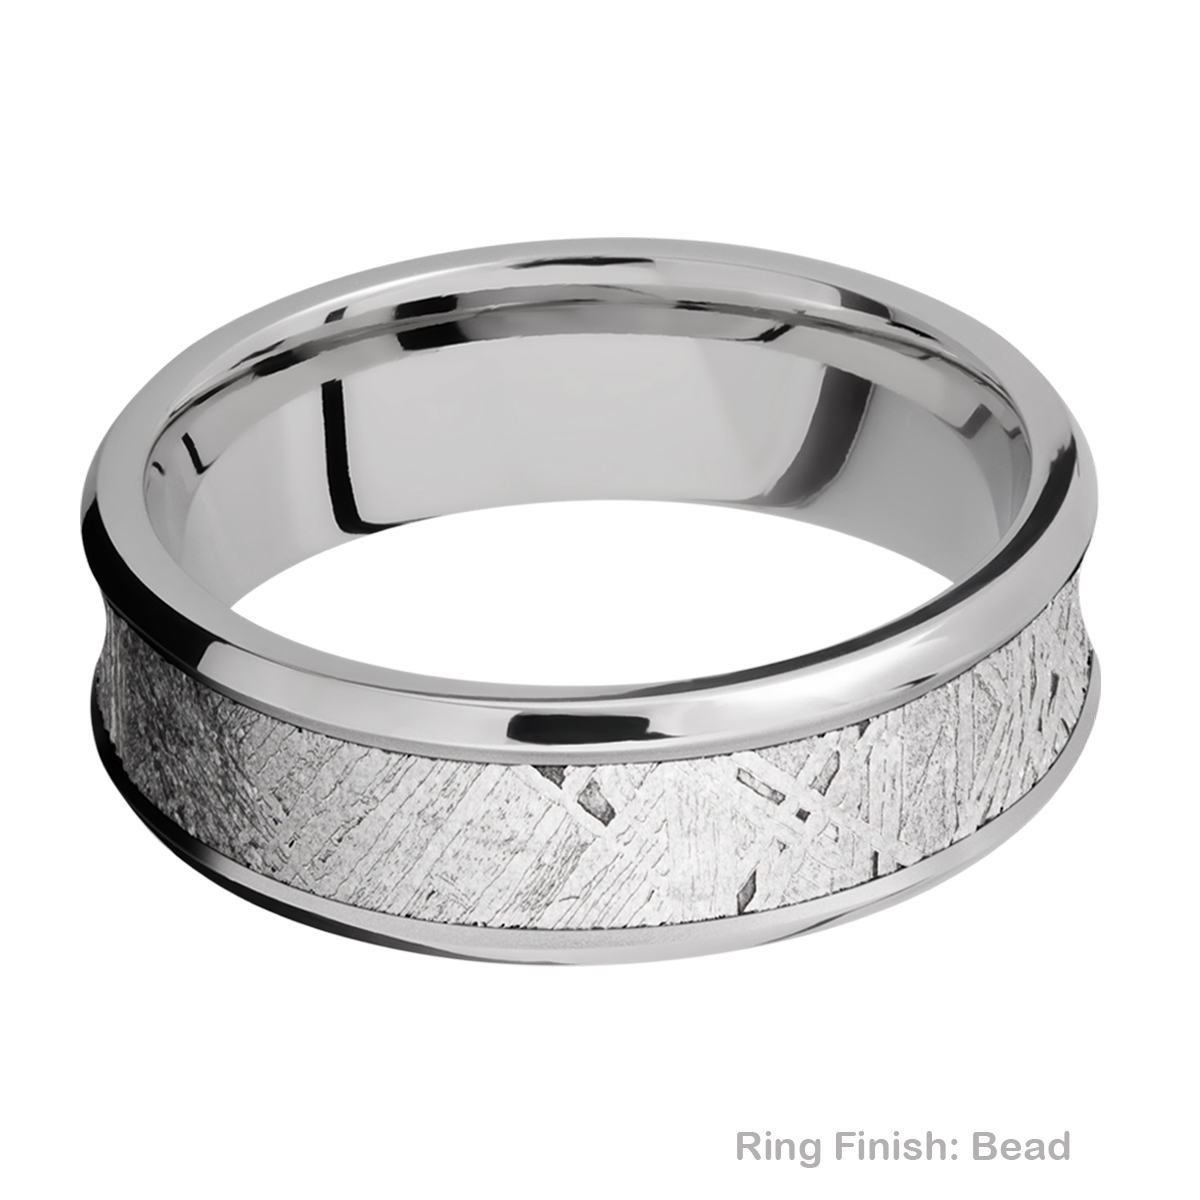 Lashbrook 7CB15/METEORITE Titanium Wedding Ring or Band Alternative View 2